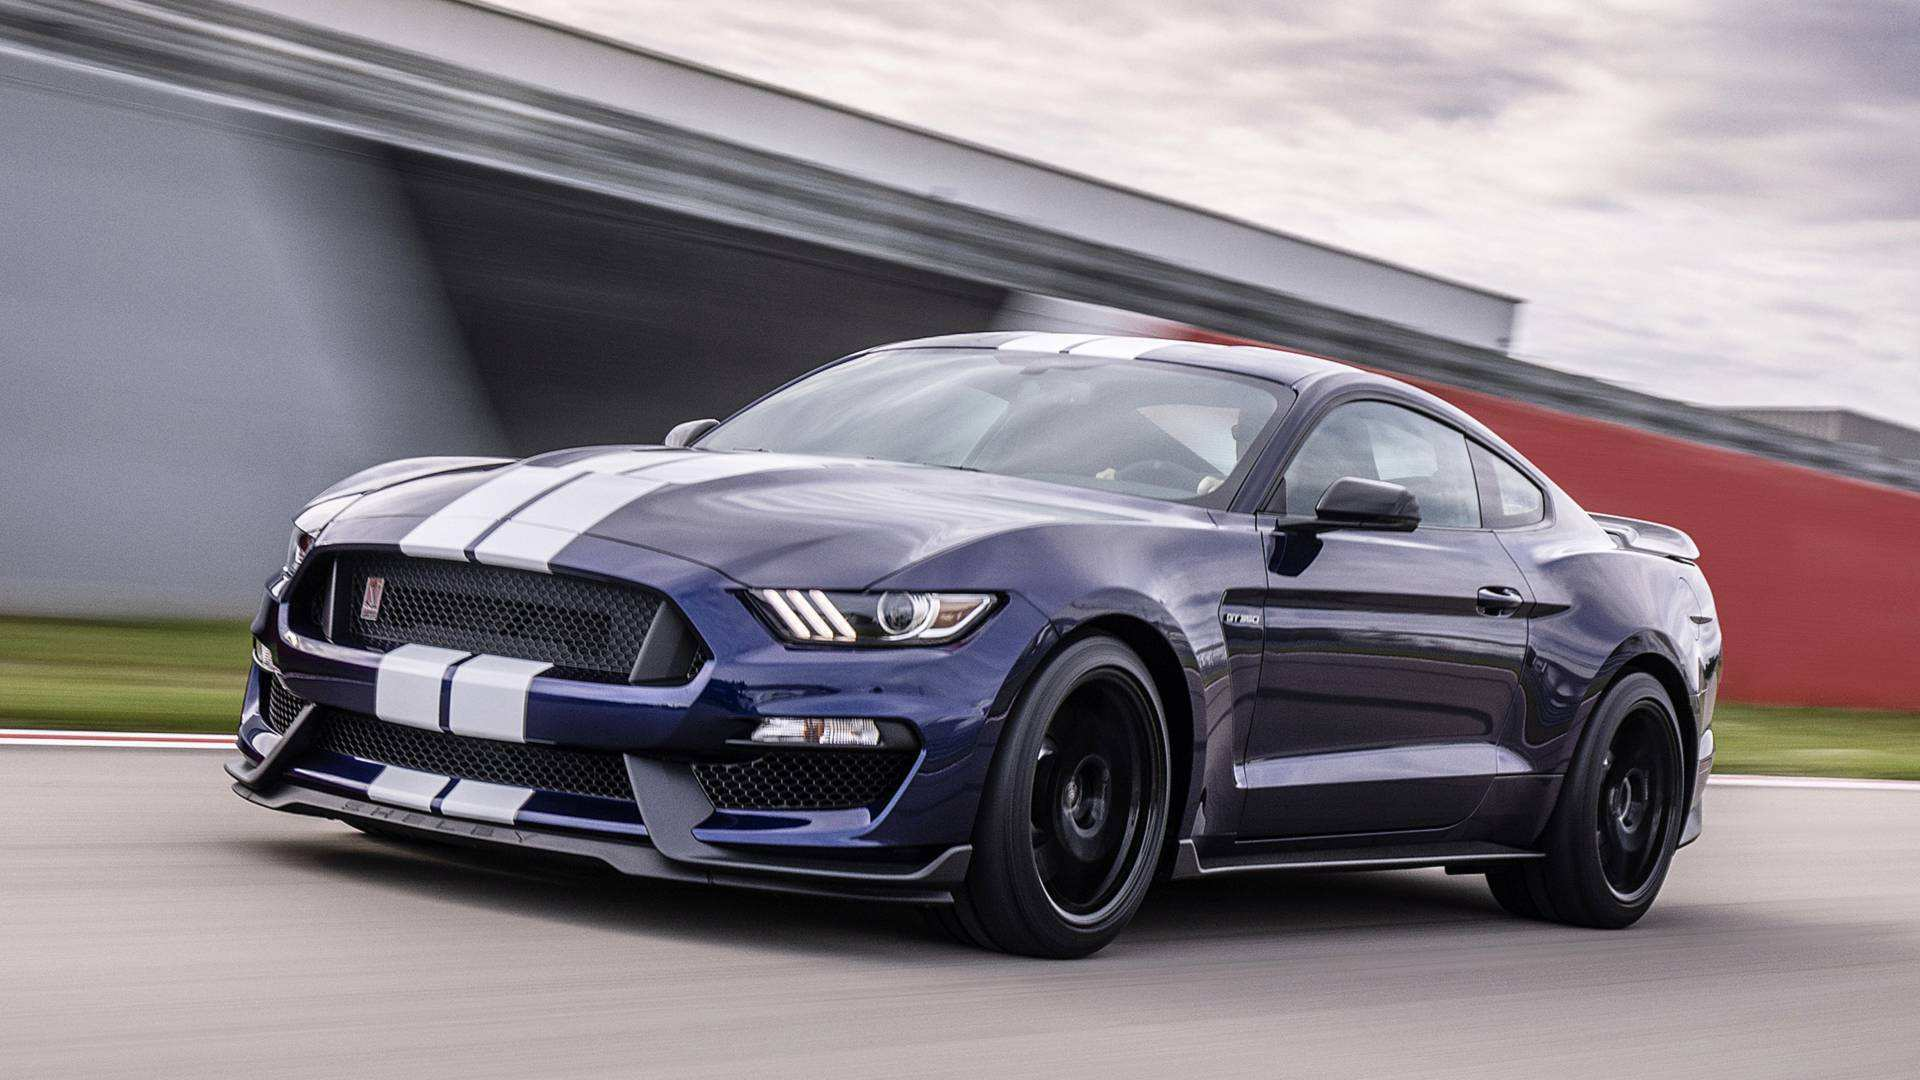 68 All New 2019 Ford Gt Mustang Price And Review